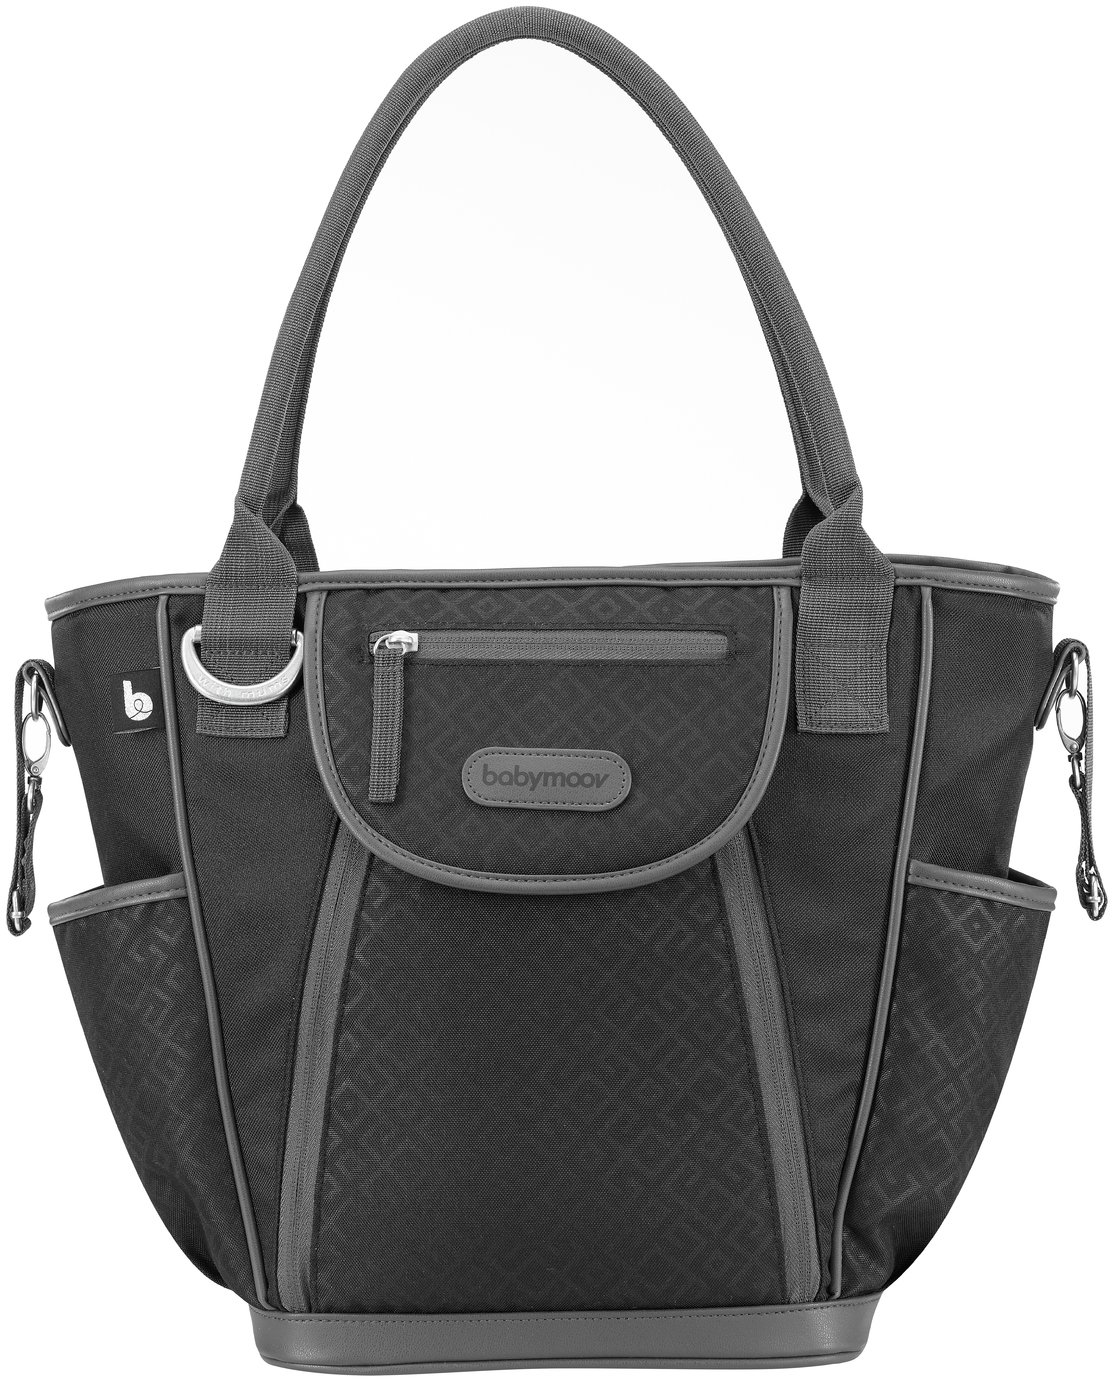 Babymoov Daily Changing Bag - Black